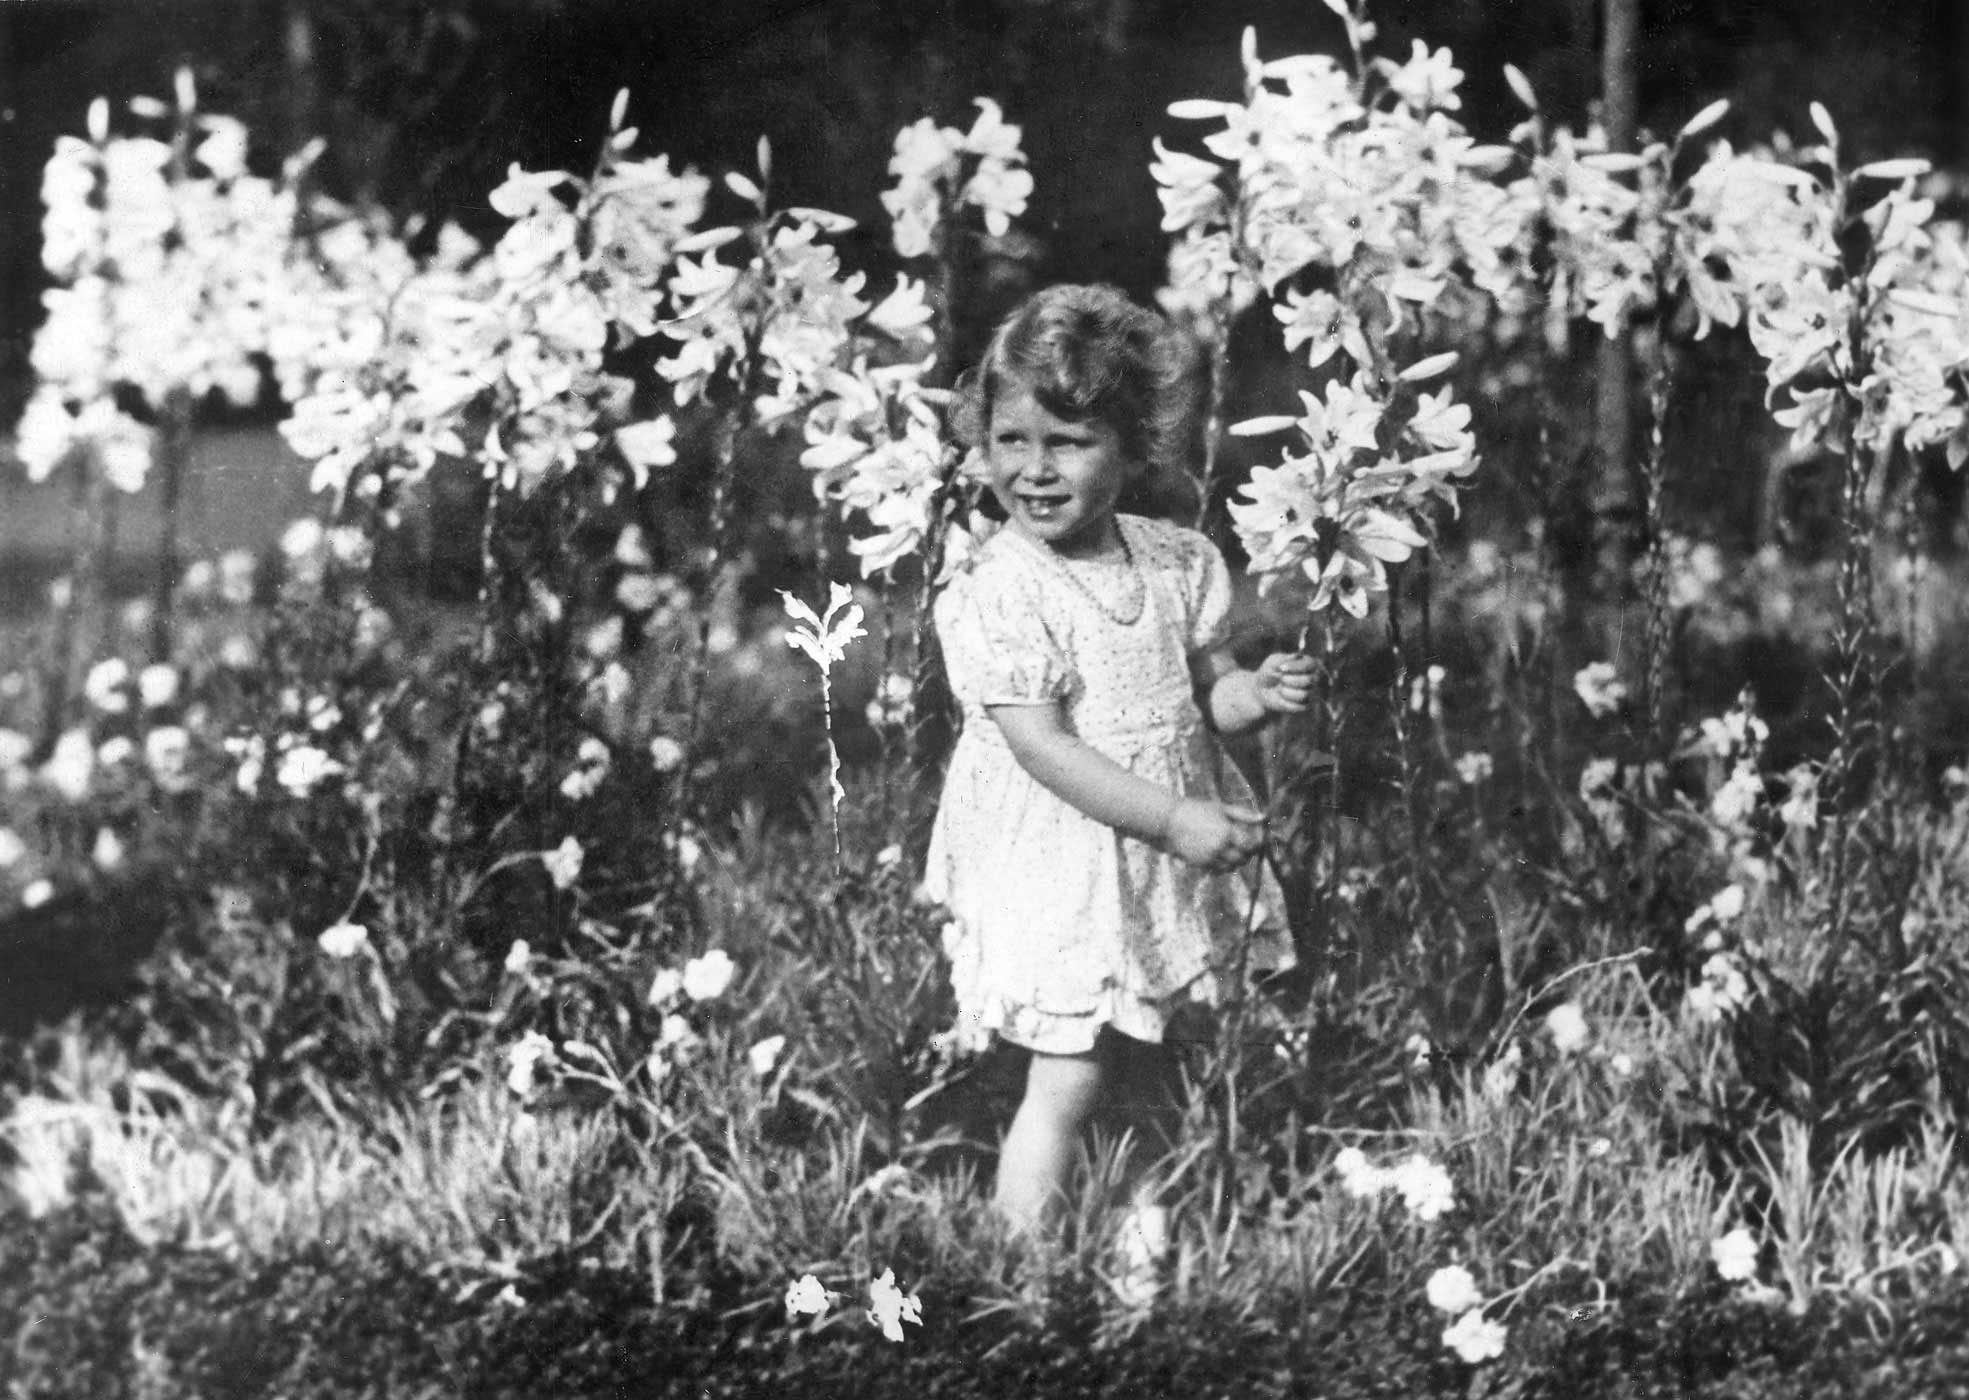 Elizabeth stands in a field picking flowers circa 1930. As the eldest child, Elizabeth, often called Lilibet by her family, was treasured among family members, including her father, who snapped this photo.